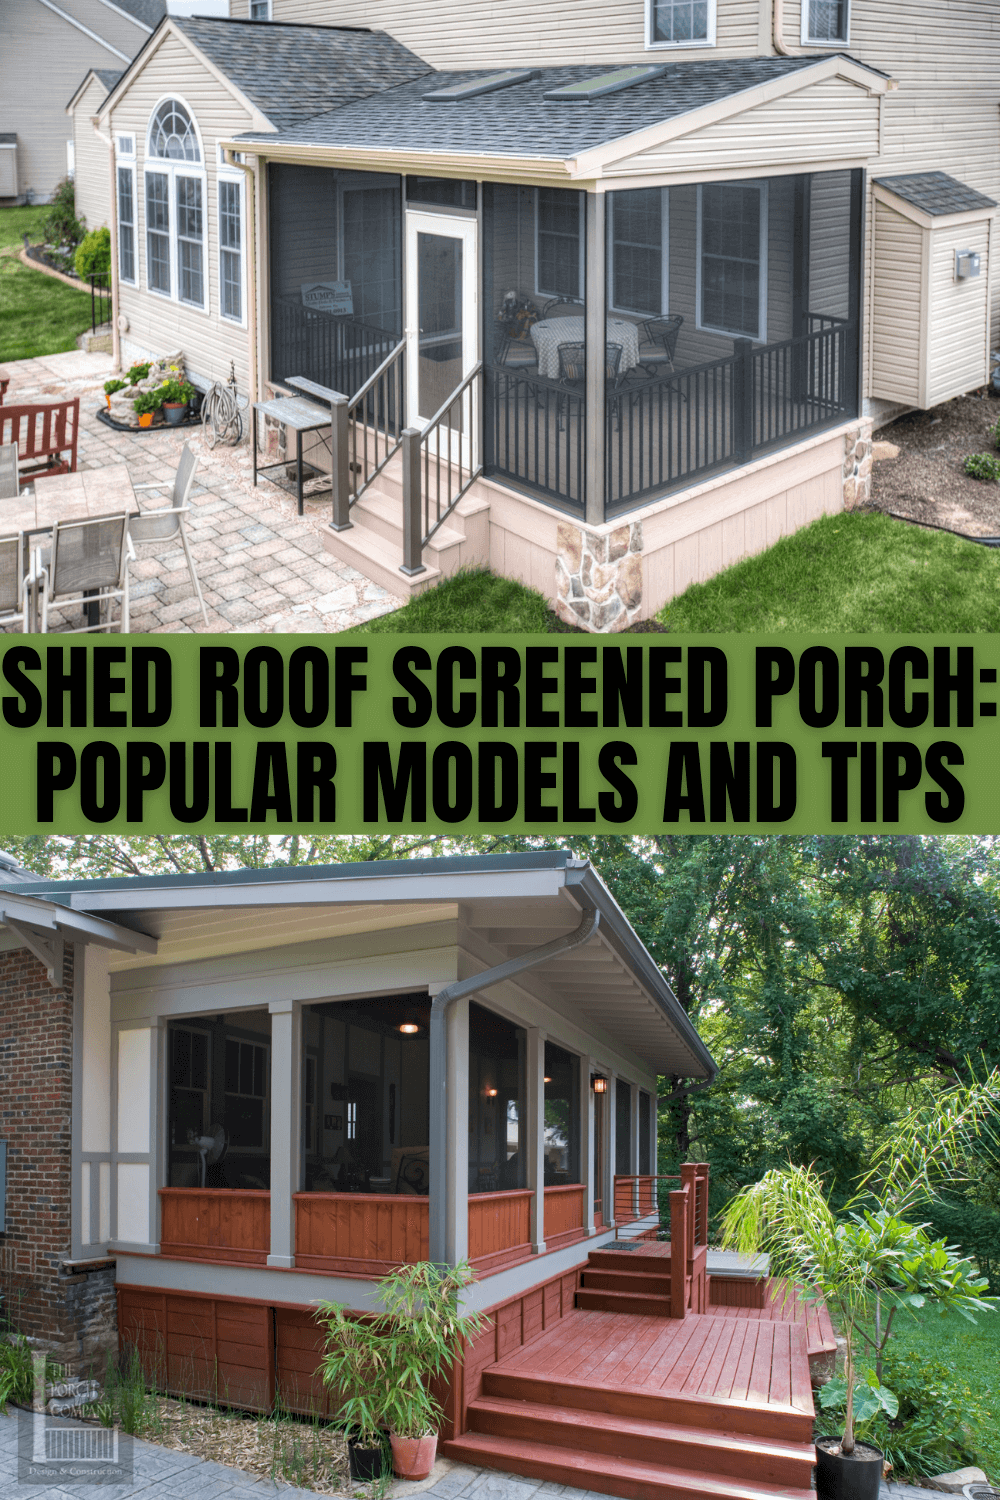 SHED ROOF SCREENED PORCH POPULAR MODELS AND TIPS